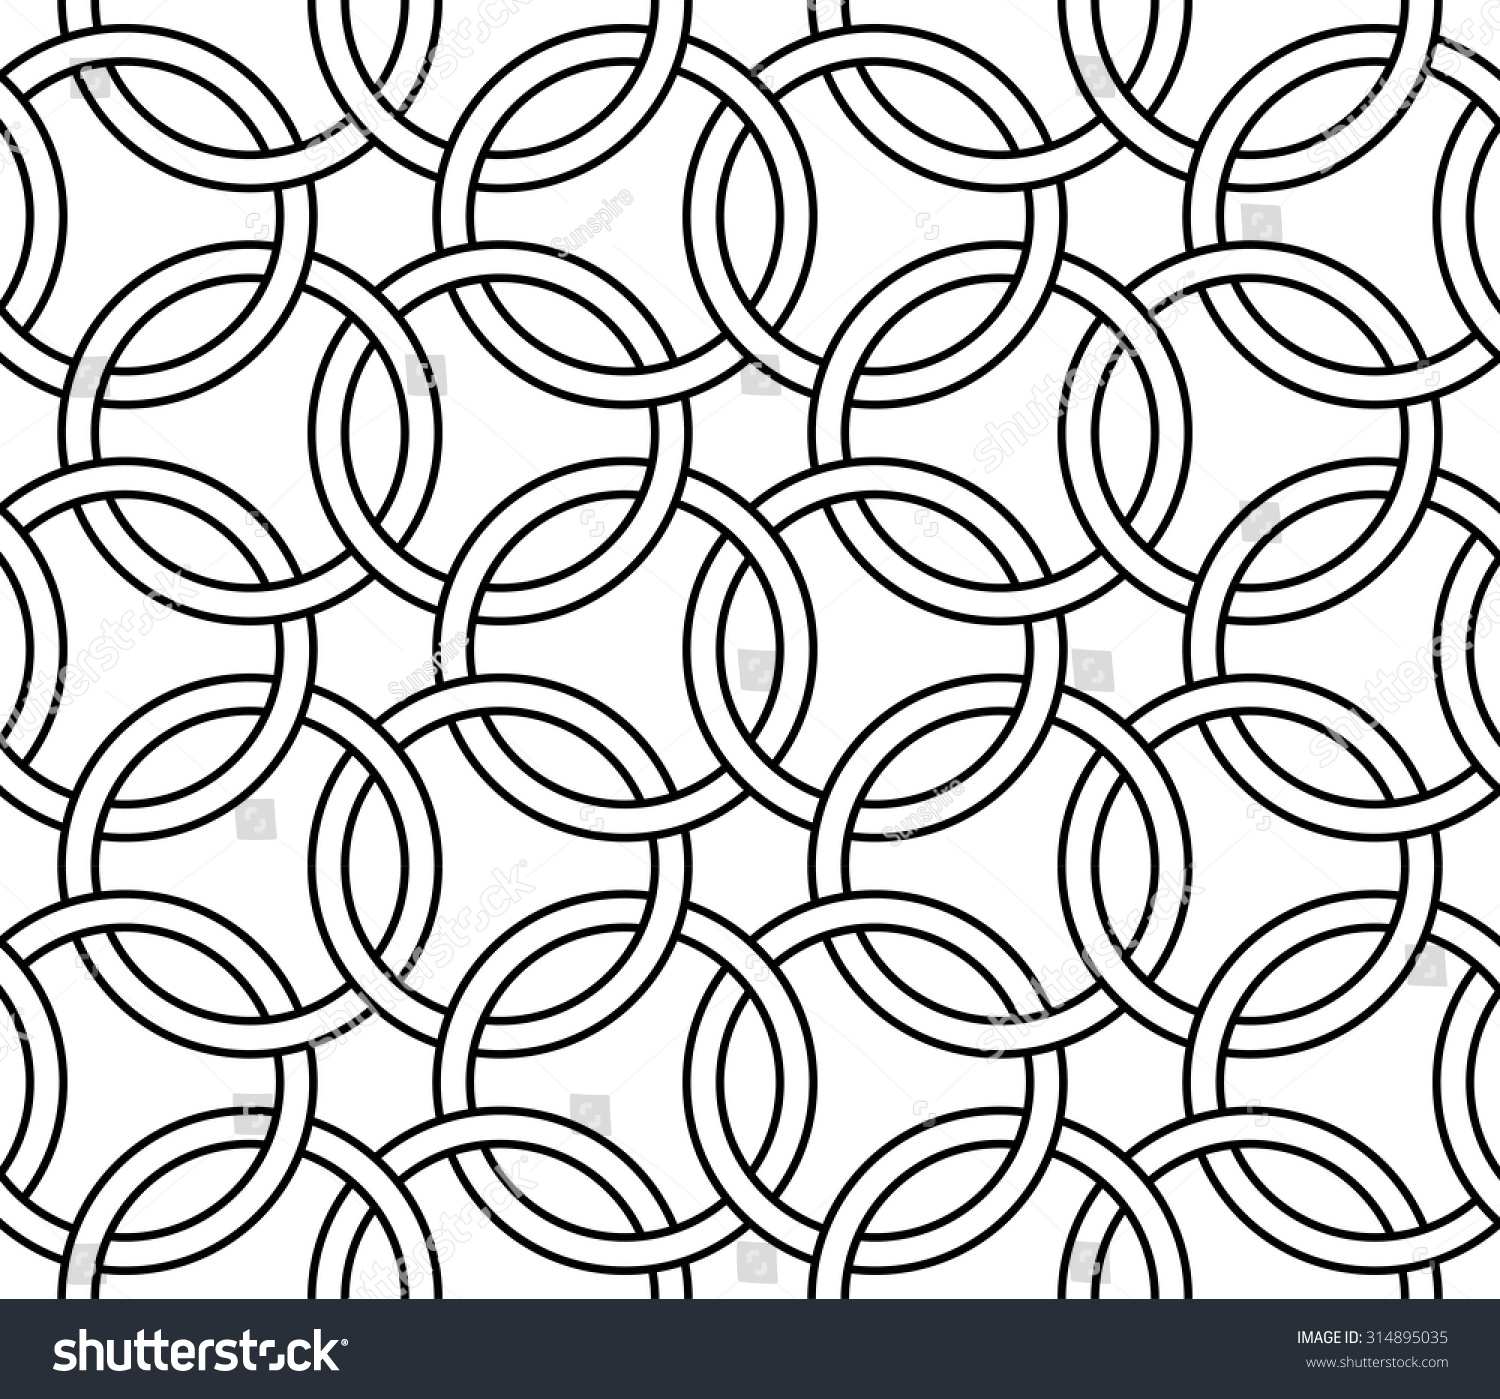 Bed sheet design texture - Vector Modern Seamless Pattern Geometry Circles Black And White Textile Print Stylish Background